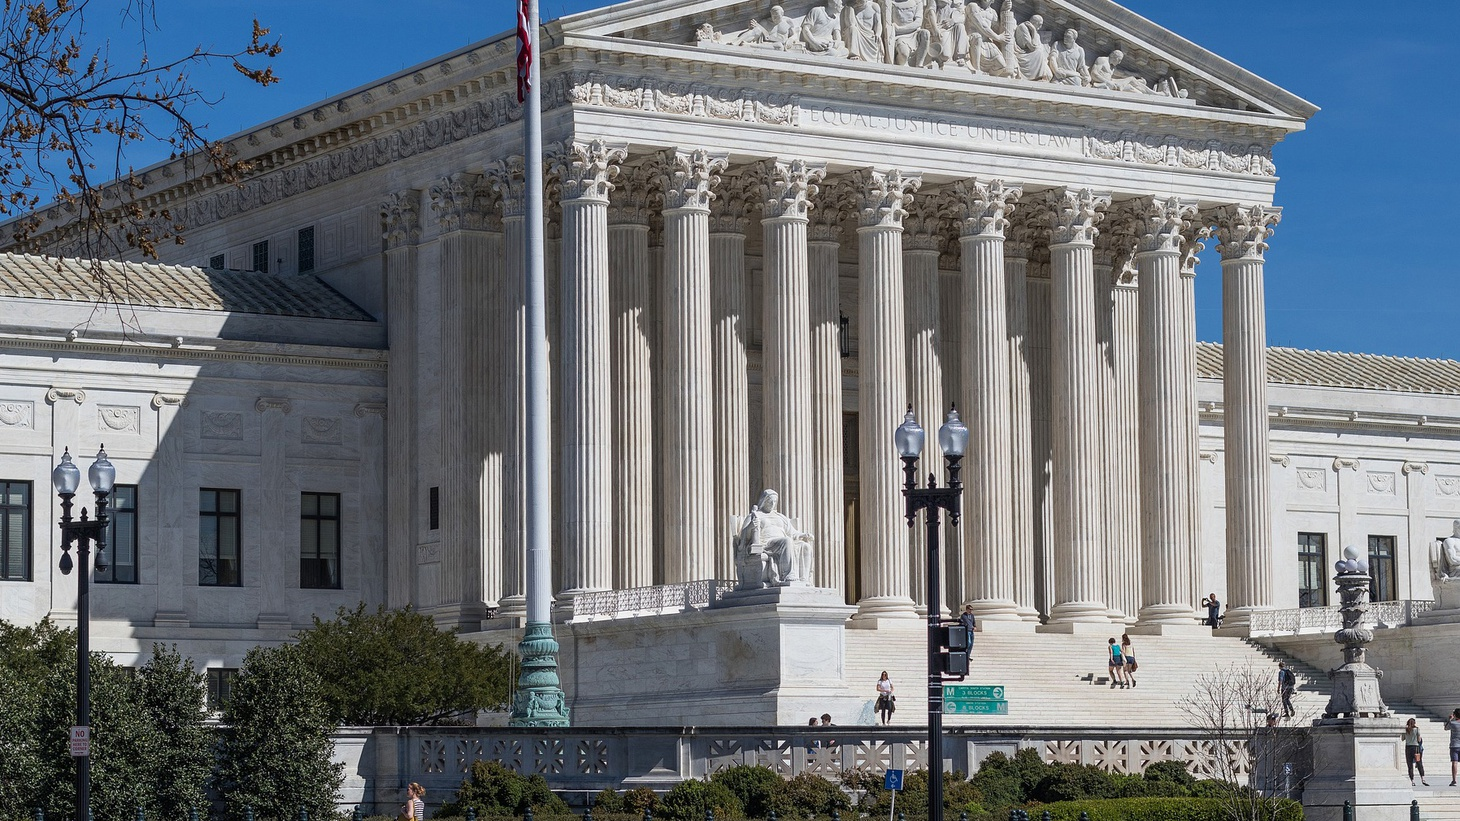 The US Supreme Court has agreed to hear a  challenge to legislative gerrymandering  in Wisconsin. The argument is that district boundaries have been drawn by Republicans to give them more seats than they deserve.